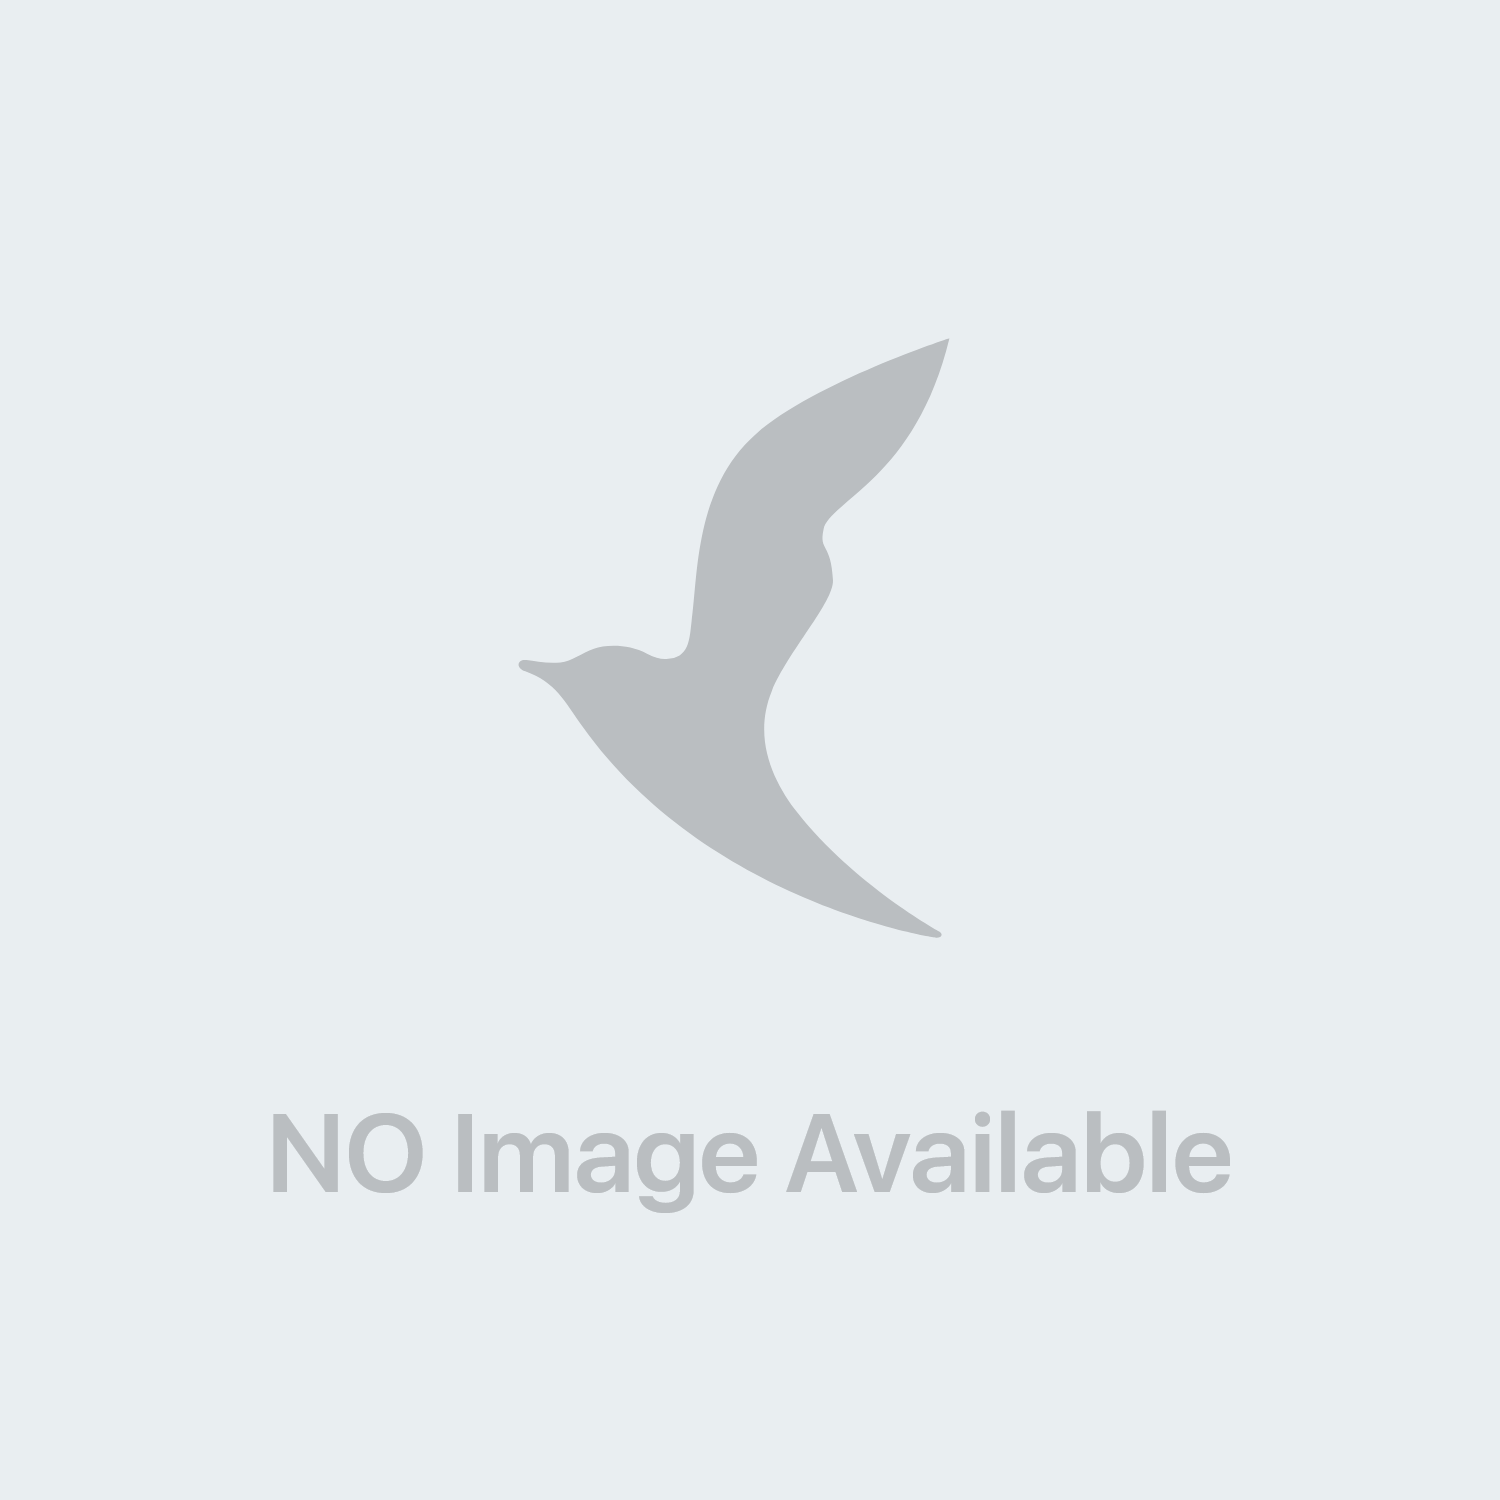 Destasi BB Cream Gambe Crema Colorata 2 100ml